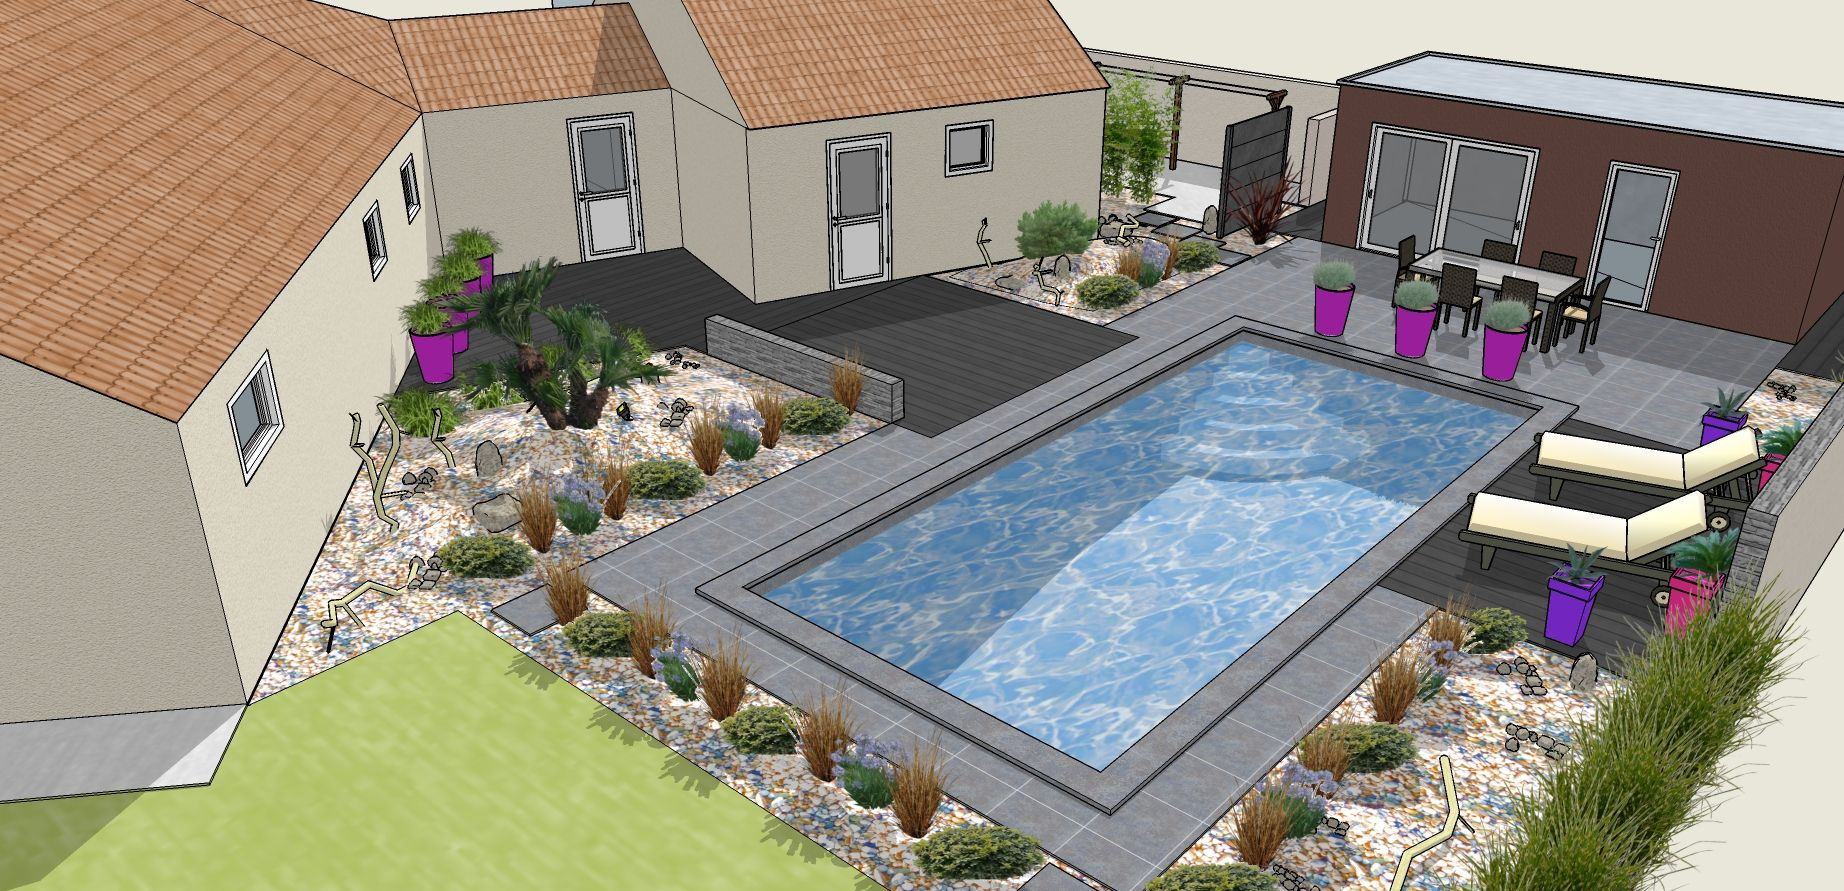 Am nagement paysager piscine creus e contemporain for Jardin contemporain avec piscine